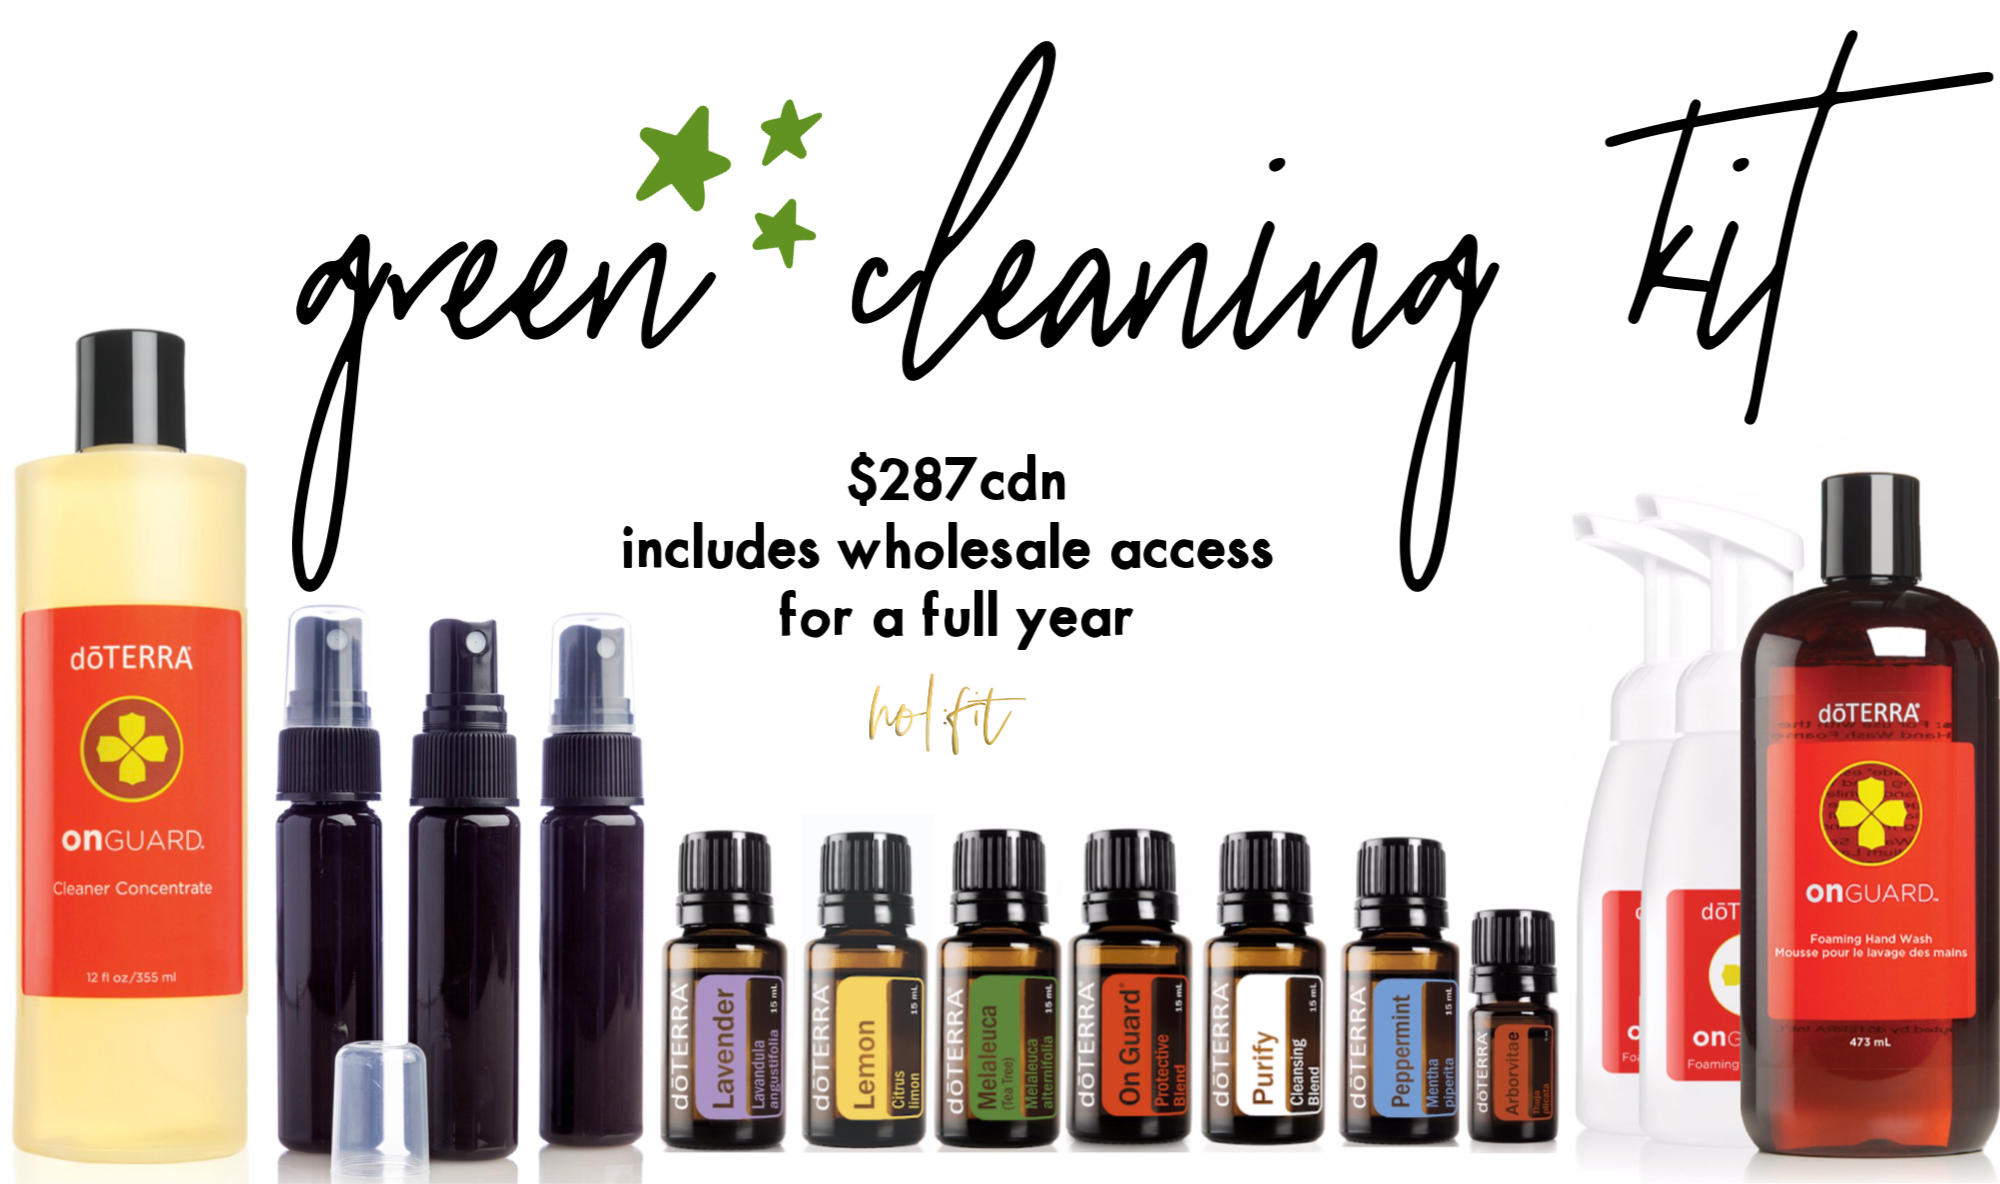 HOL:FIT green cleaning kit doterra